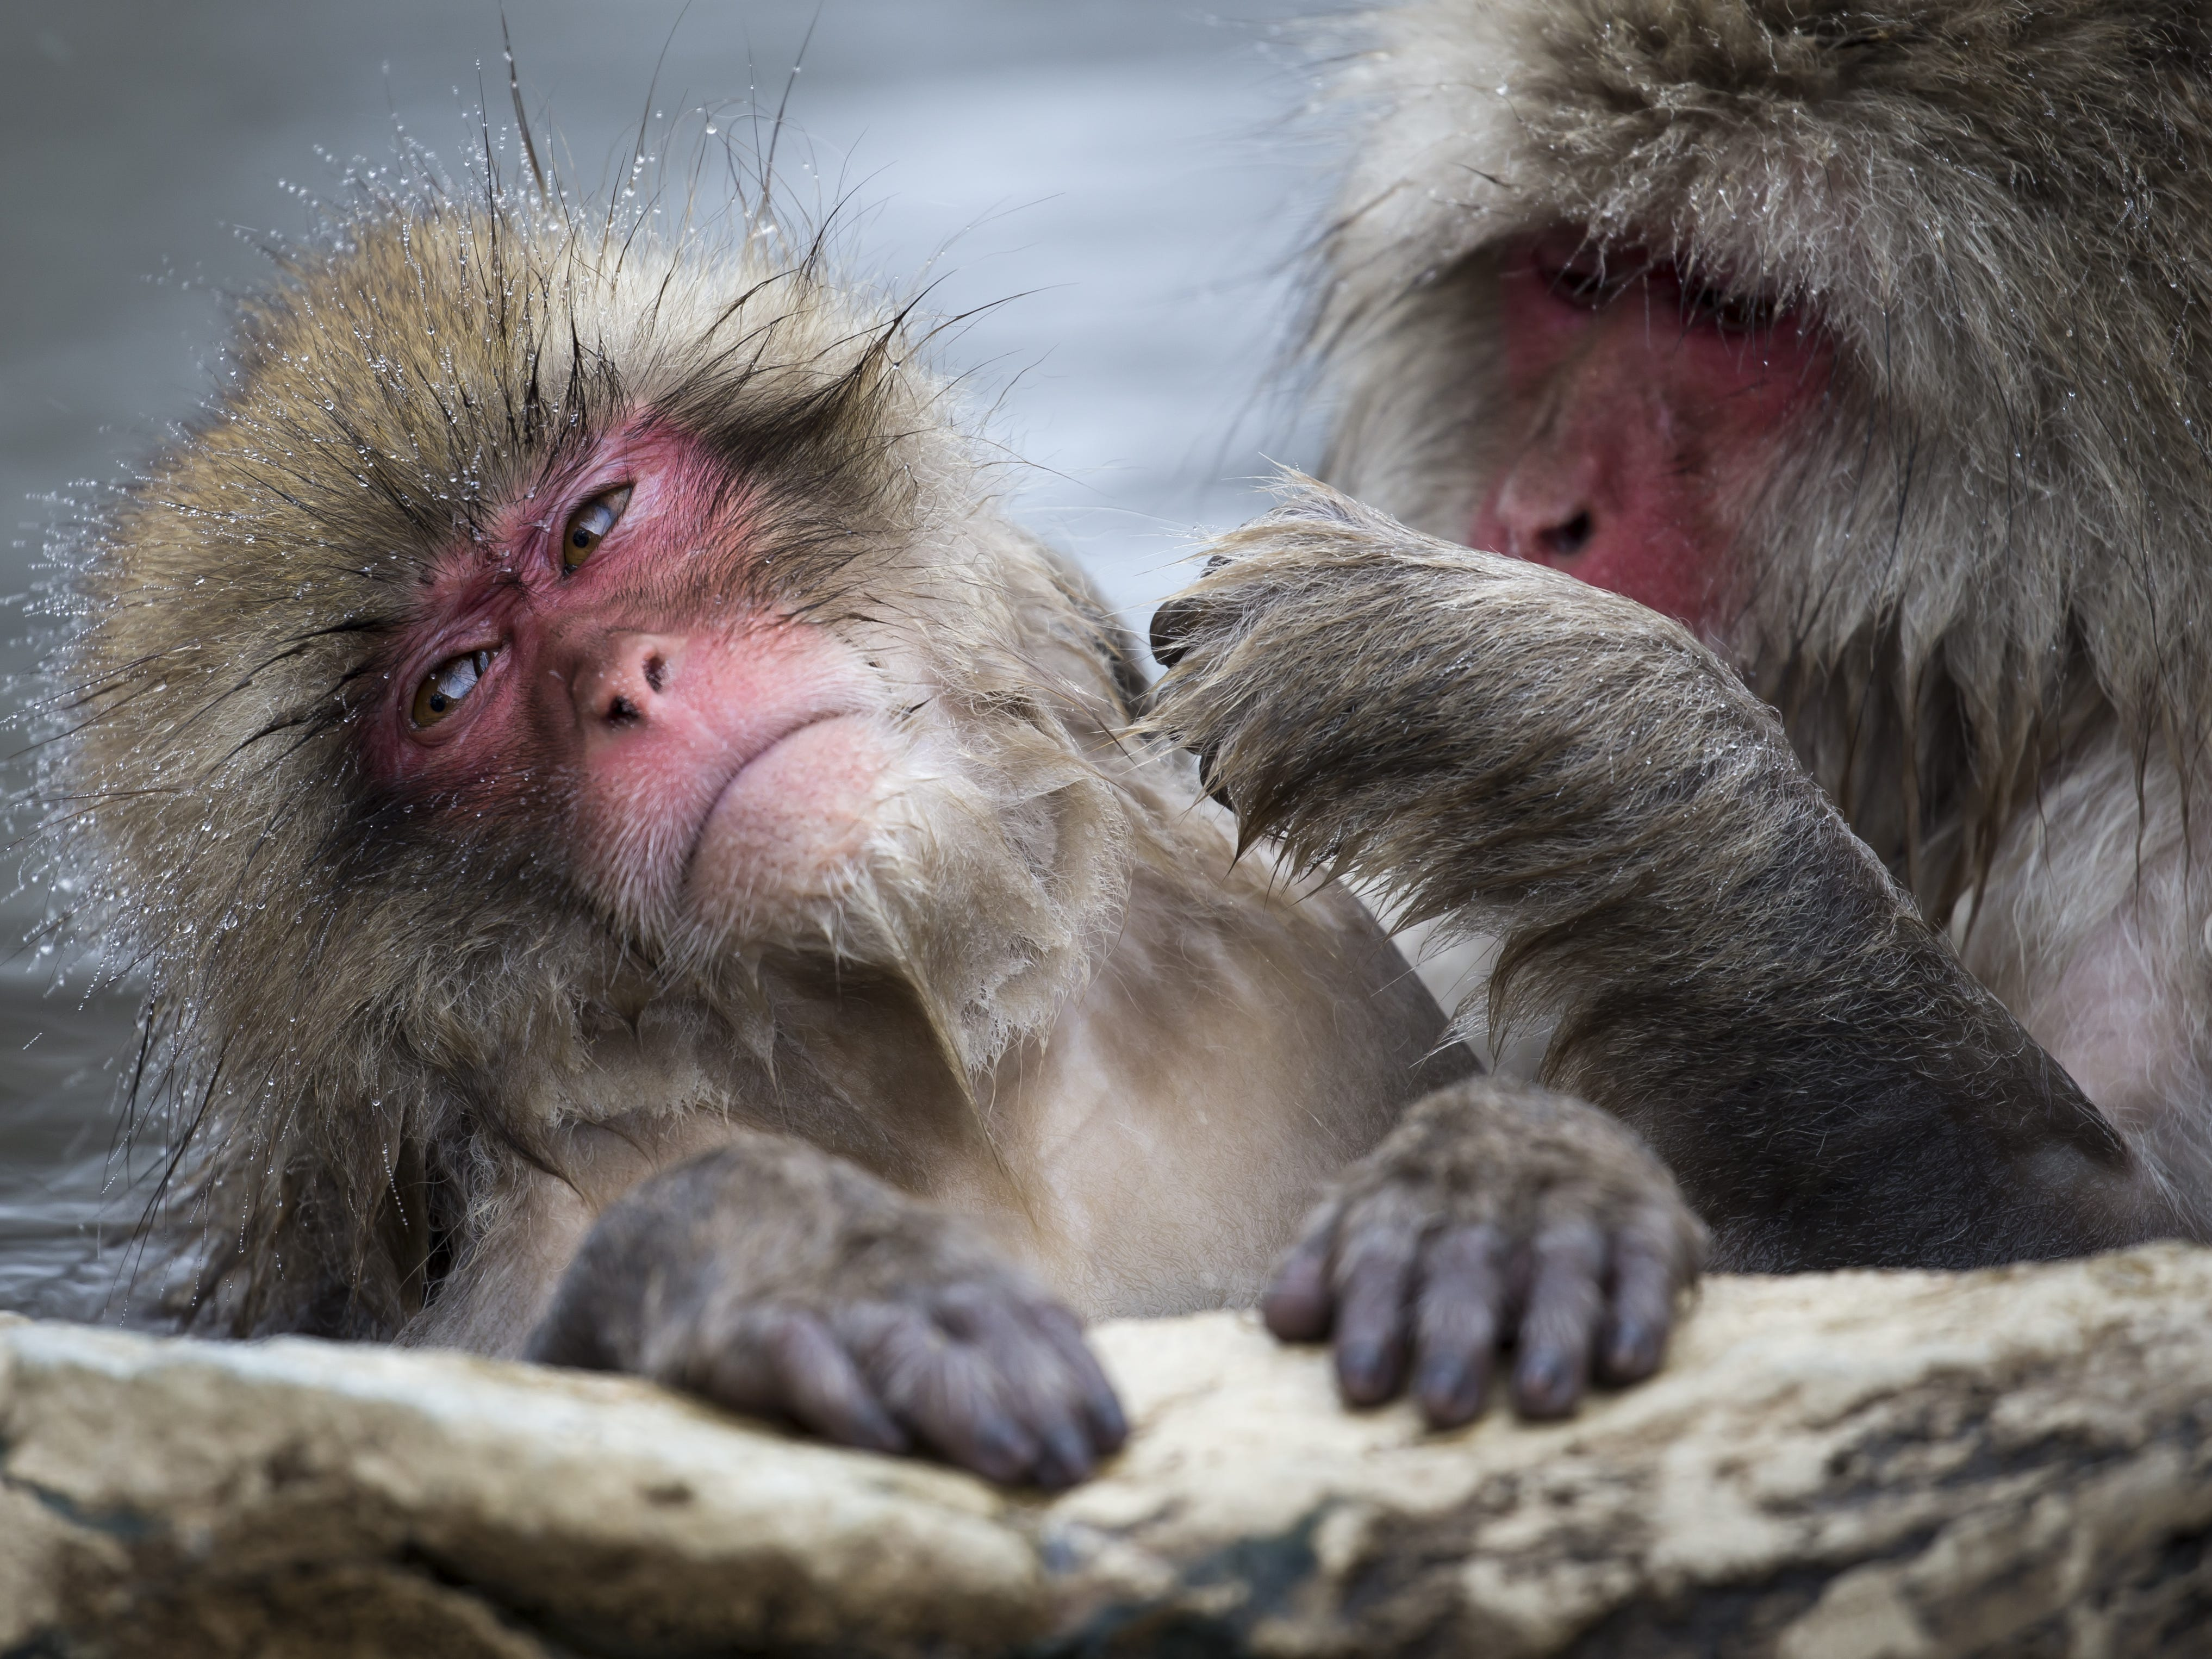 YAMANOUCHI, JAPAN - FEBRUARY 08: Macaque monkeys bathe in a hot spring at the Jigokudani Yaen-koen wild Macaque monkey park on February 8, 2019 in Yamanouchi, Japan. The wild Japanese macaques are known as snow monkeys, according to the park's official website. (Photo by Tomohiro Ohsumi/Getty Images) ORG XMIT: 775292339 ORIG FILE ID: 1128215693